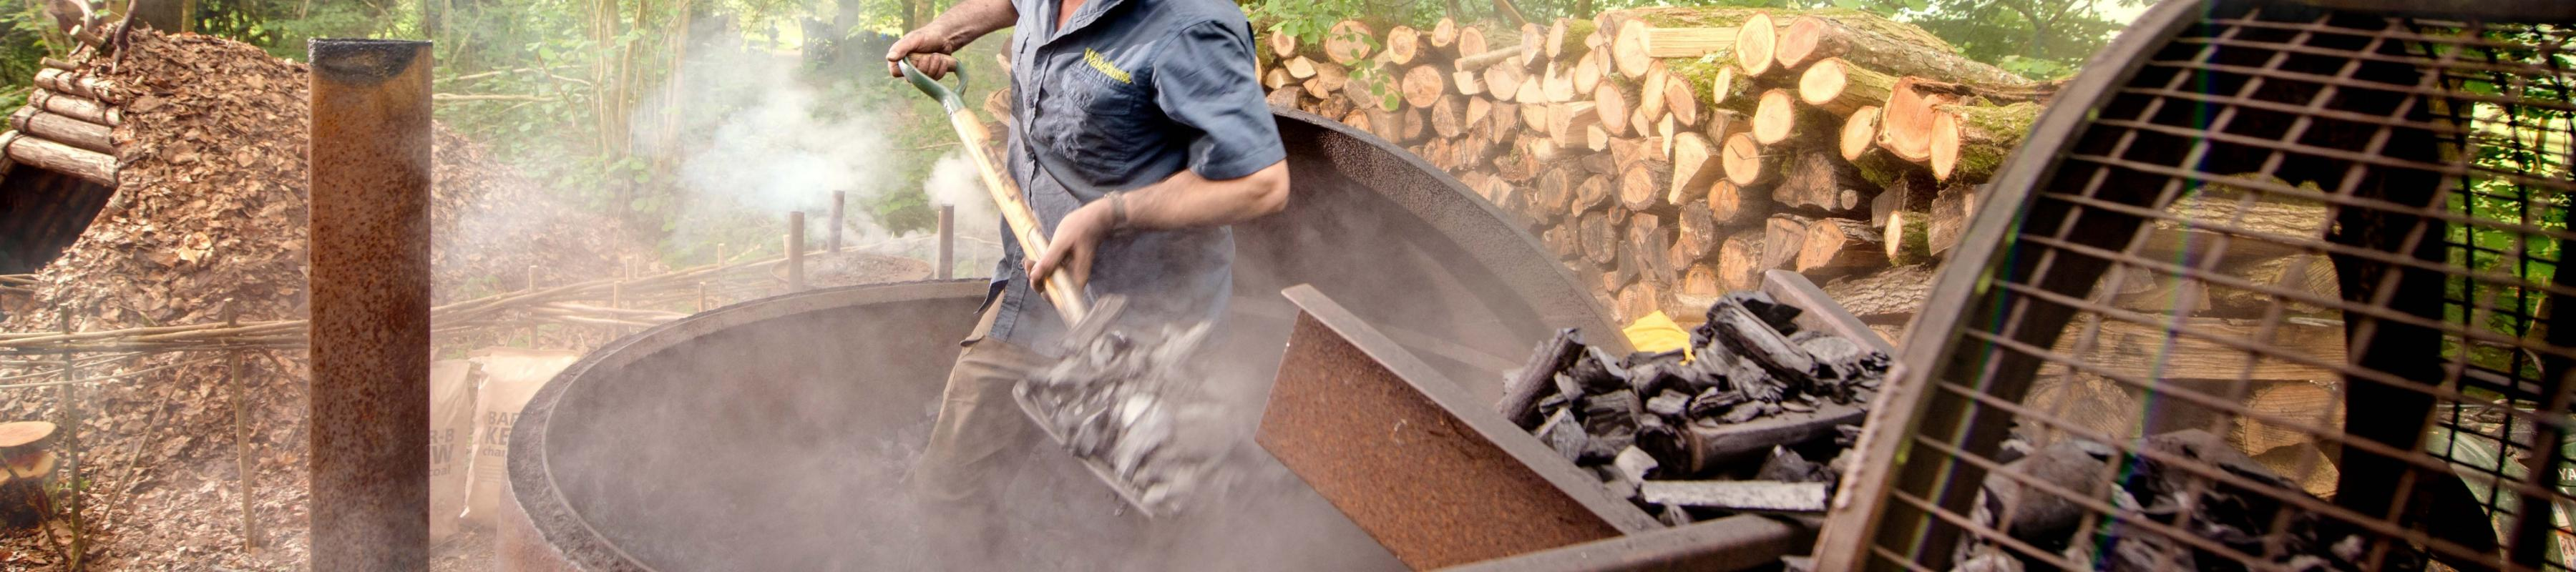 Charcoal-making at Wakehurst